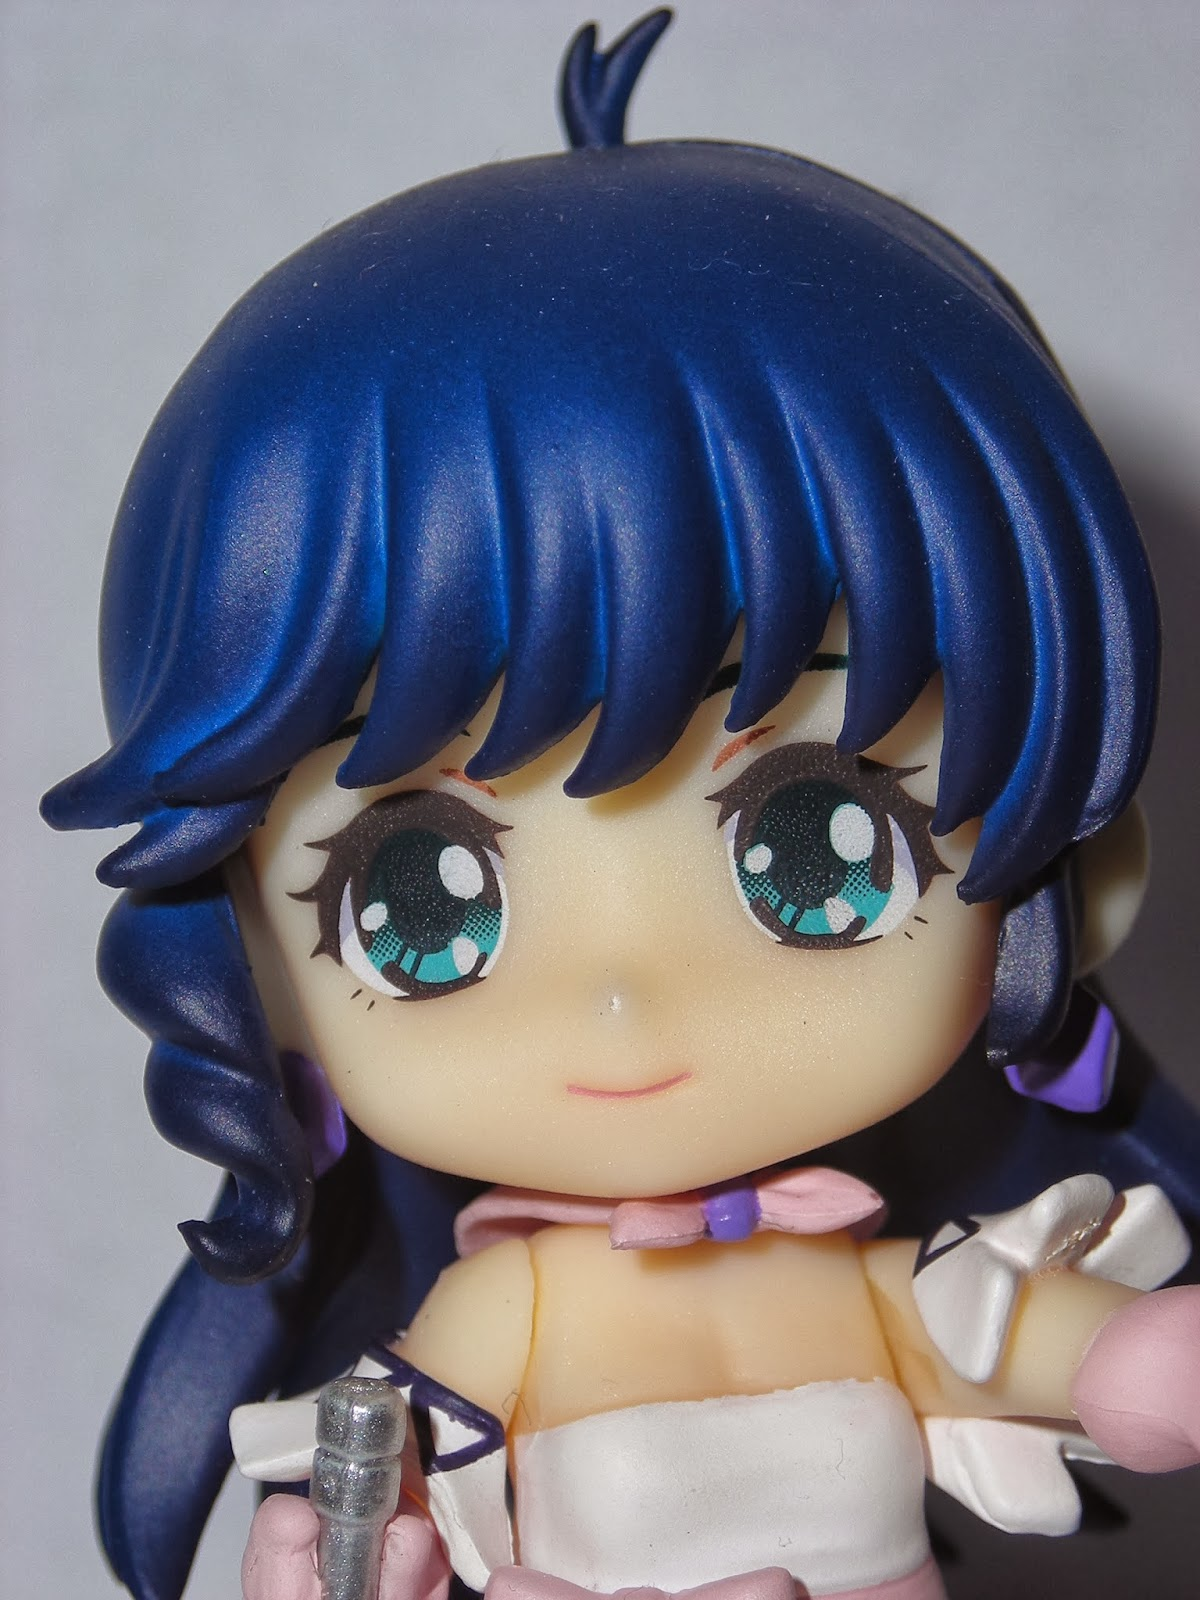 The original Macross girl, Lynn Minmay, up close